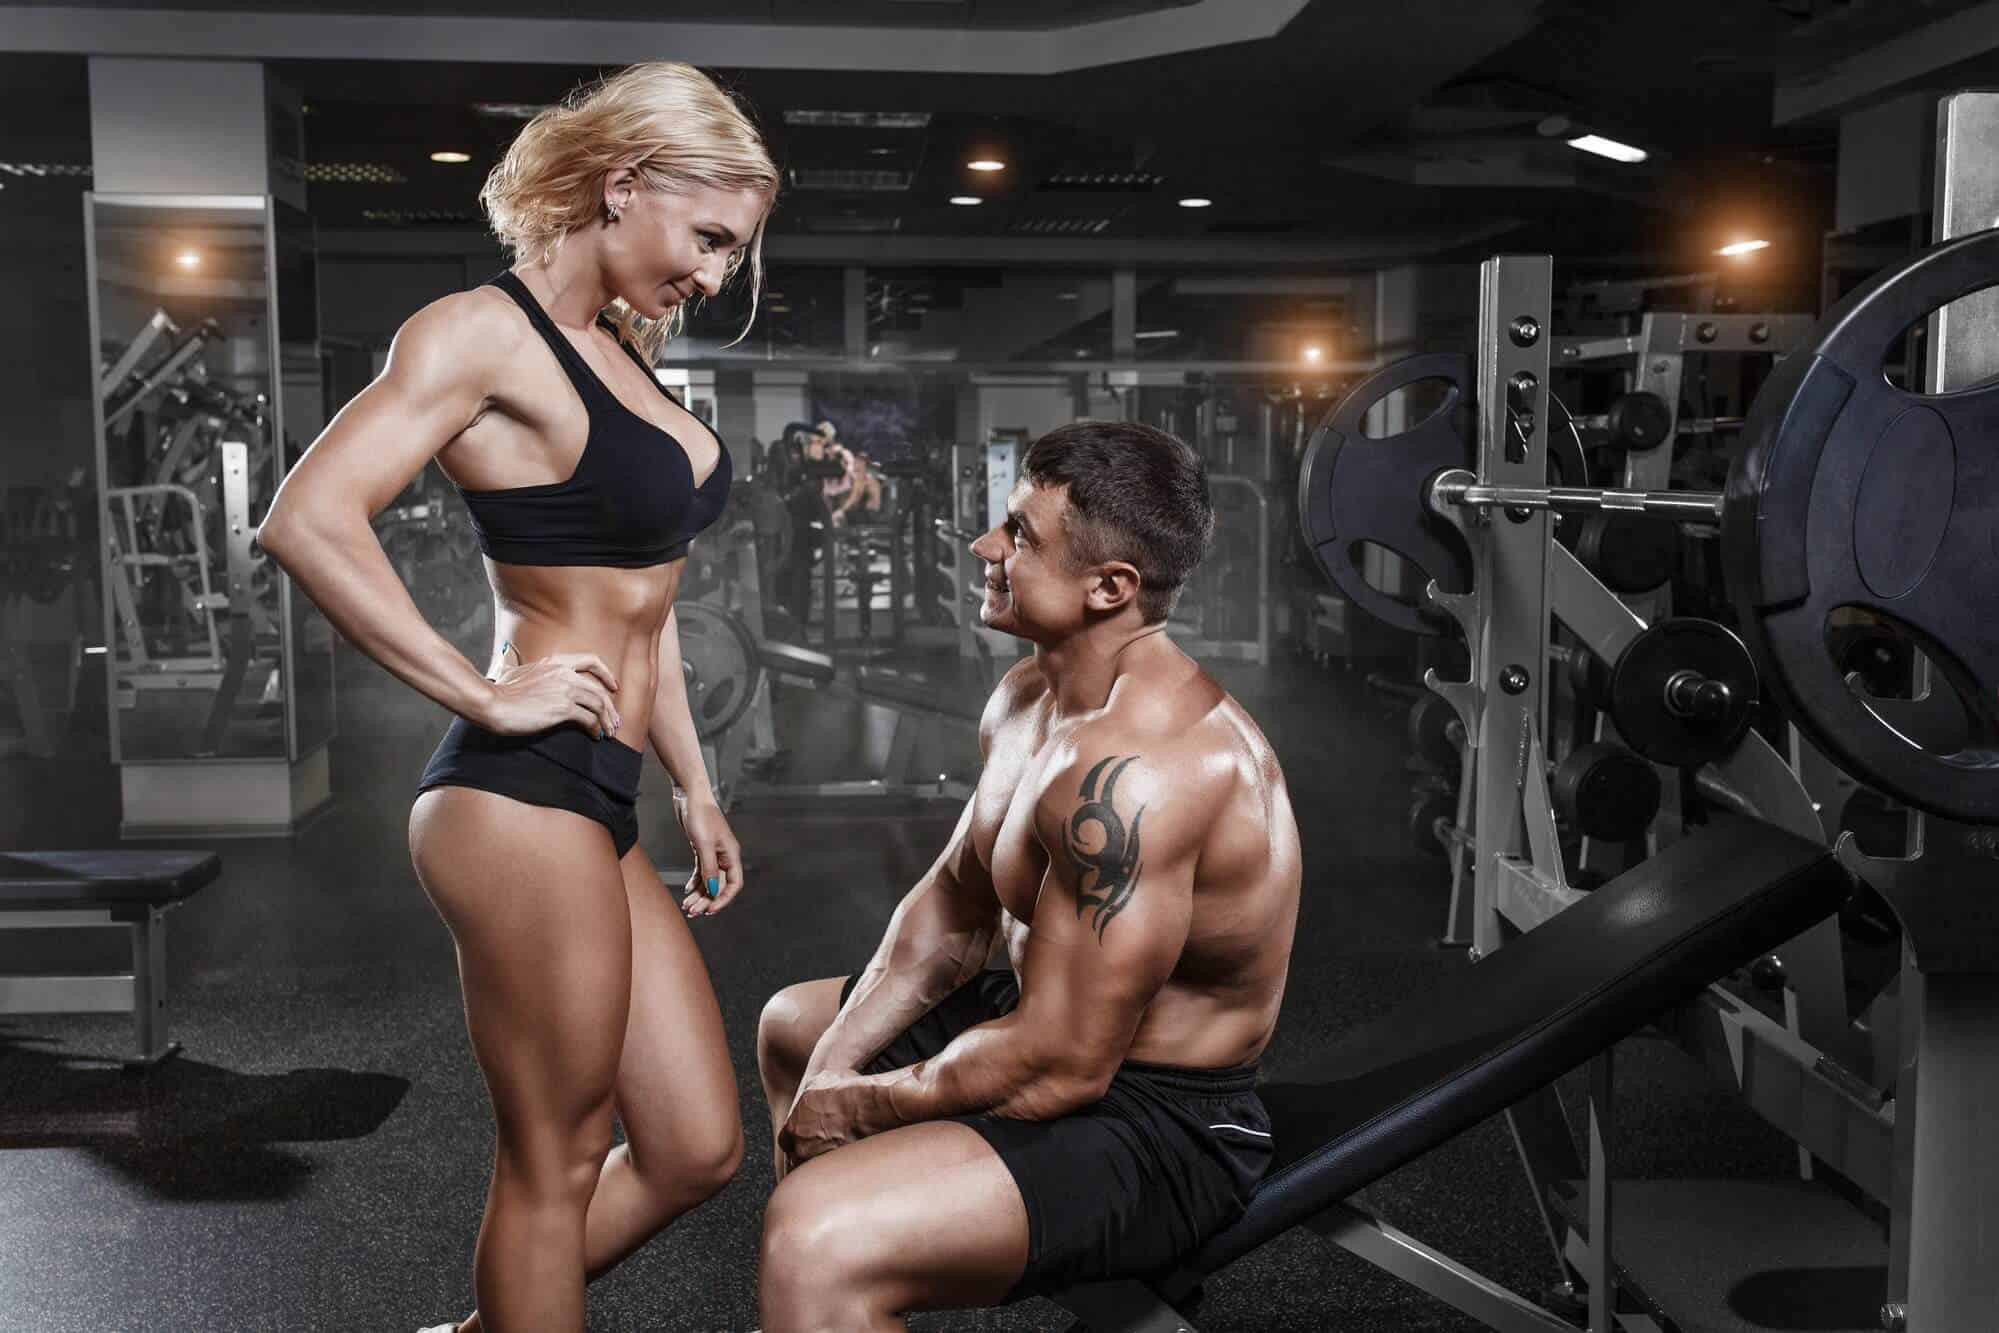 Fitness myth -Lifting weights makes women bulky